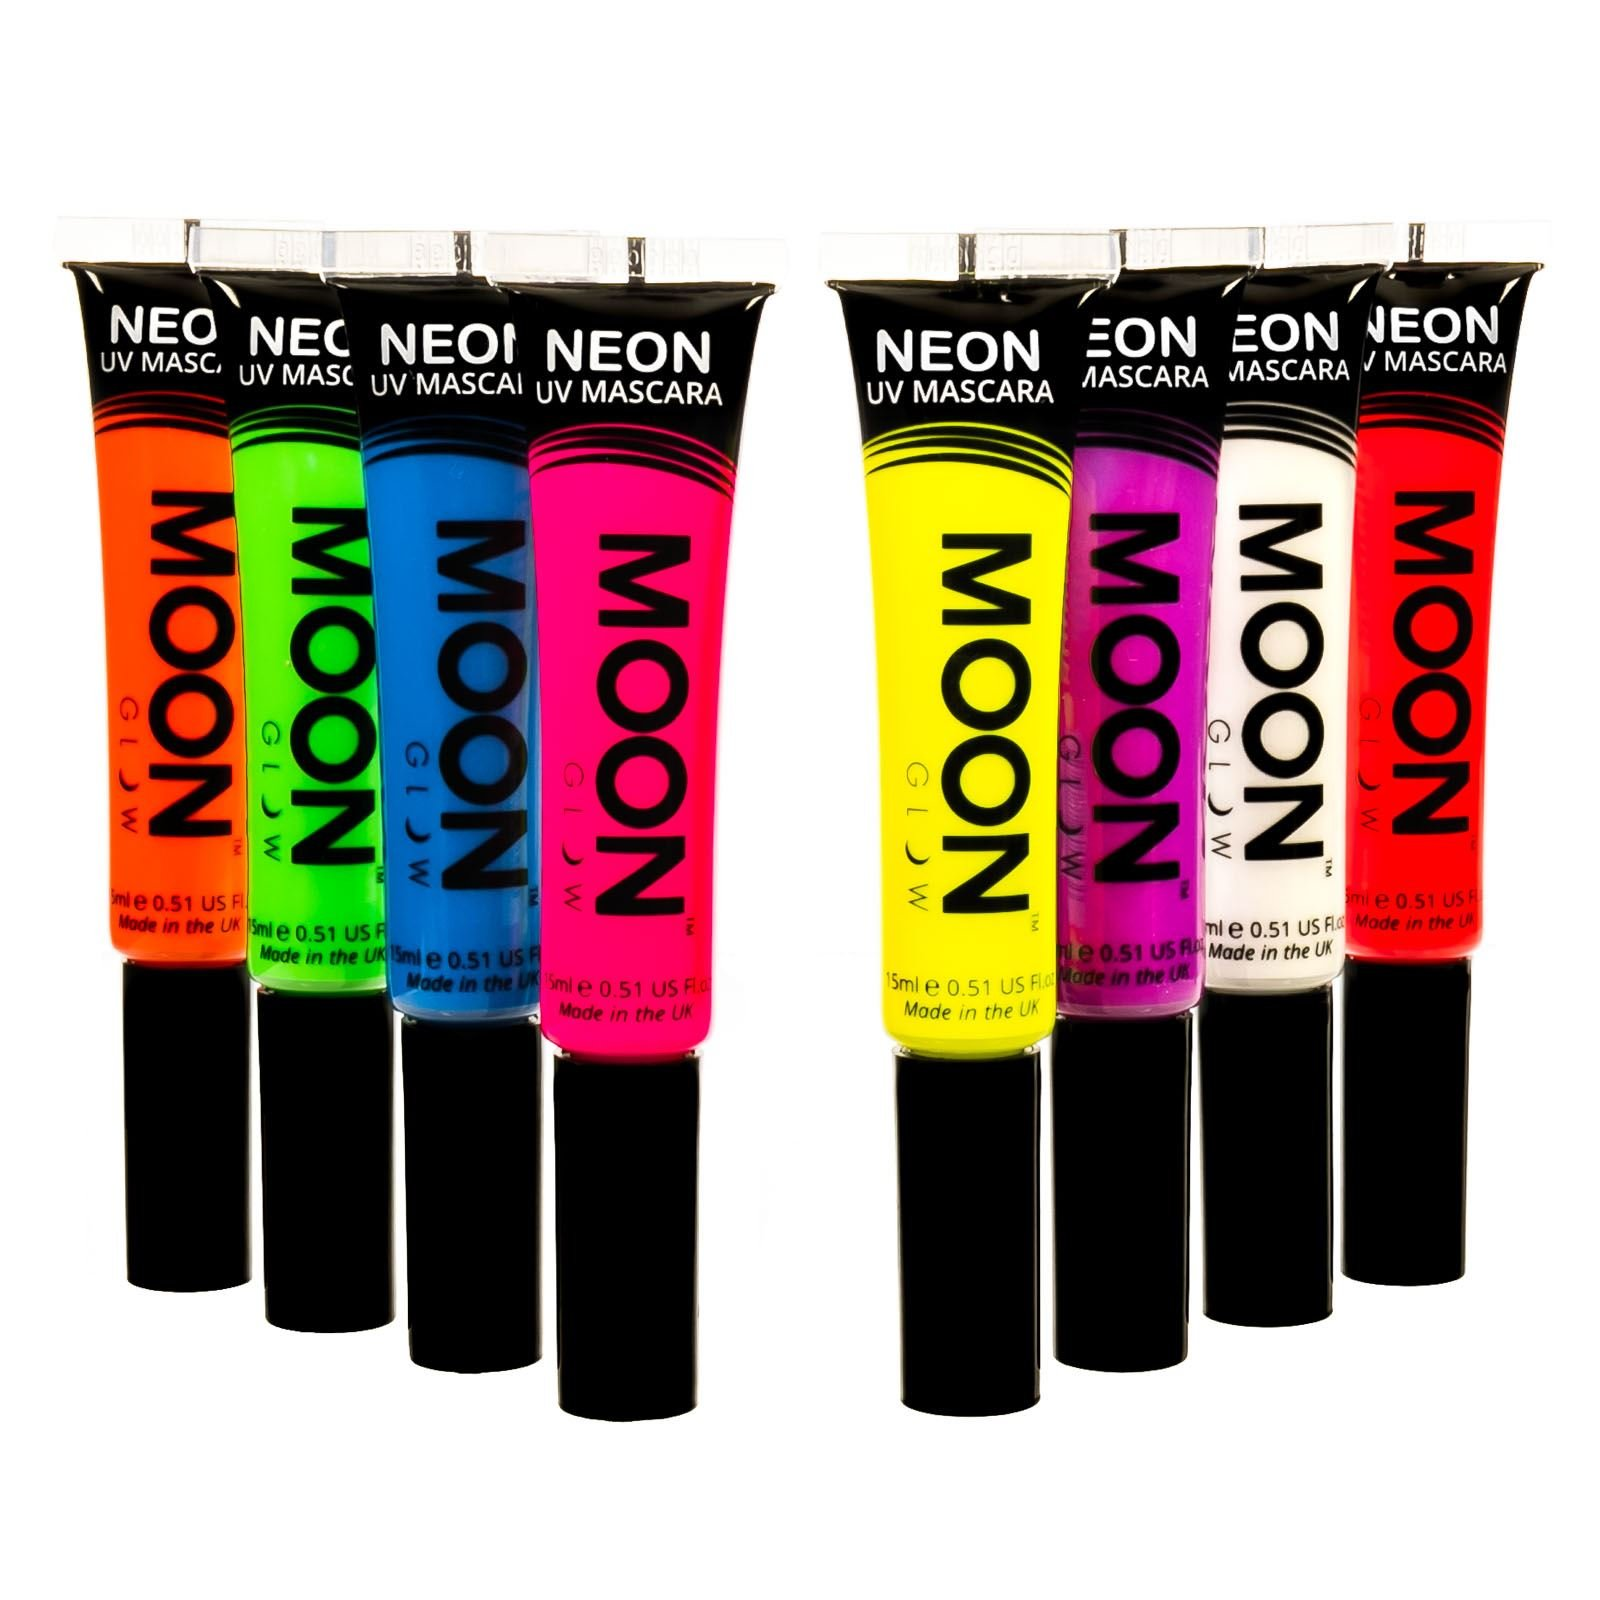 Moon Glow - Blacklight Neon Mascara 0.51oz Set of 8 colors - Glows brightly under Blacklights / UV Lighting!